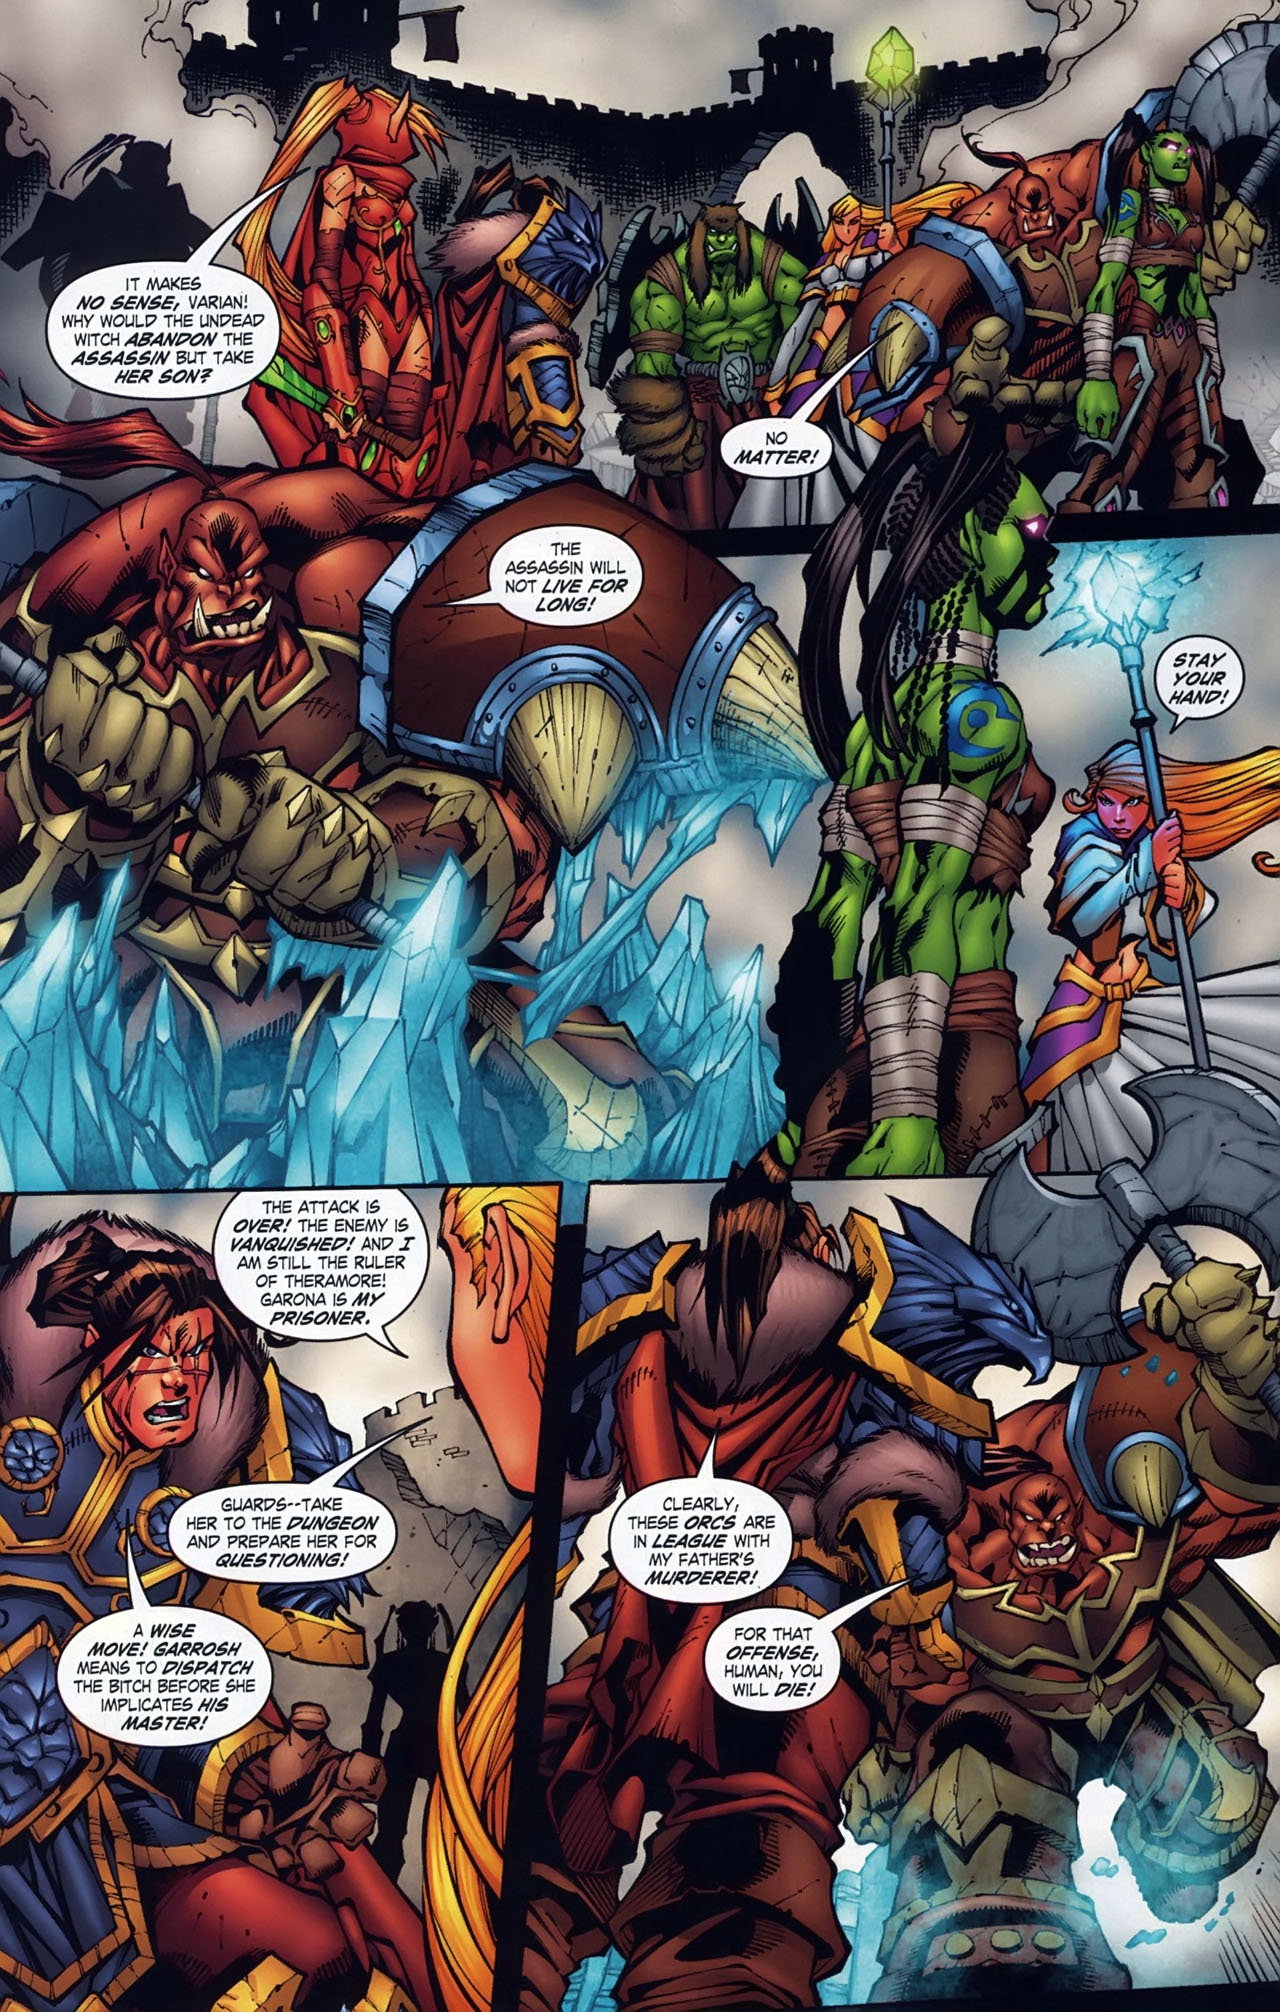 Read online World of Warcraft comic -  Issue #18 - 13